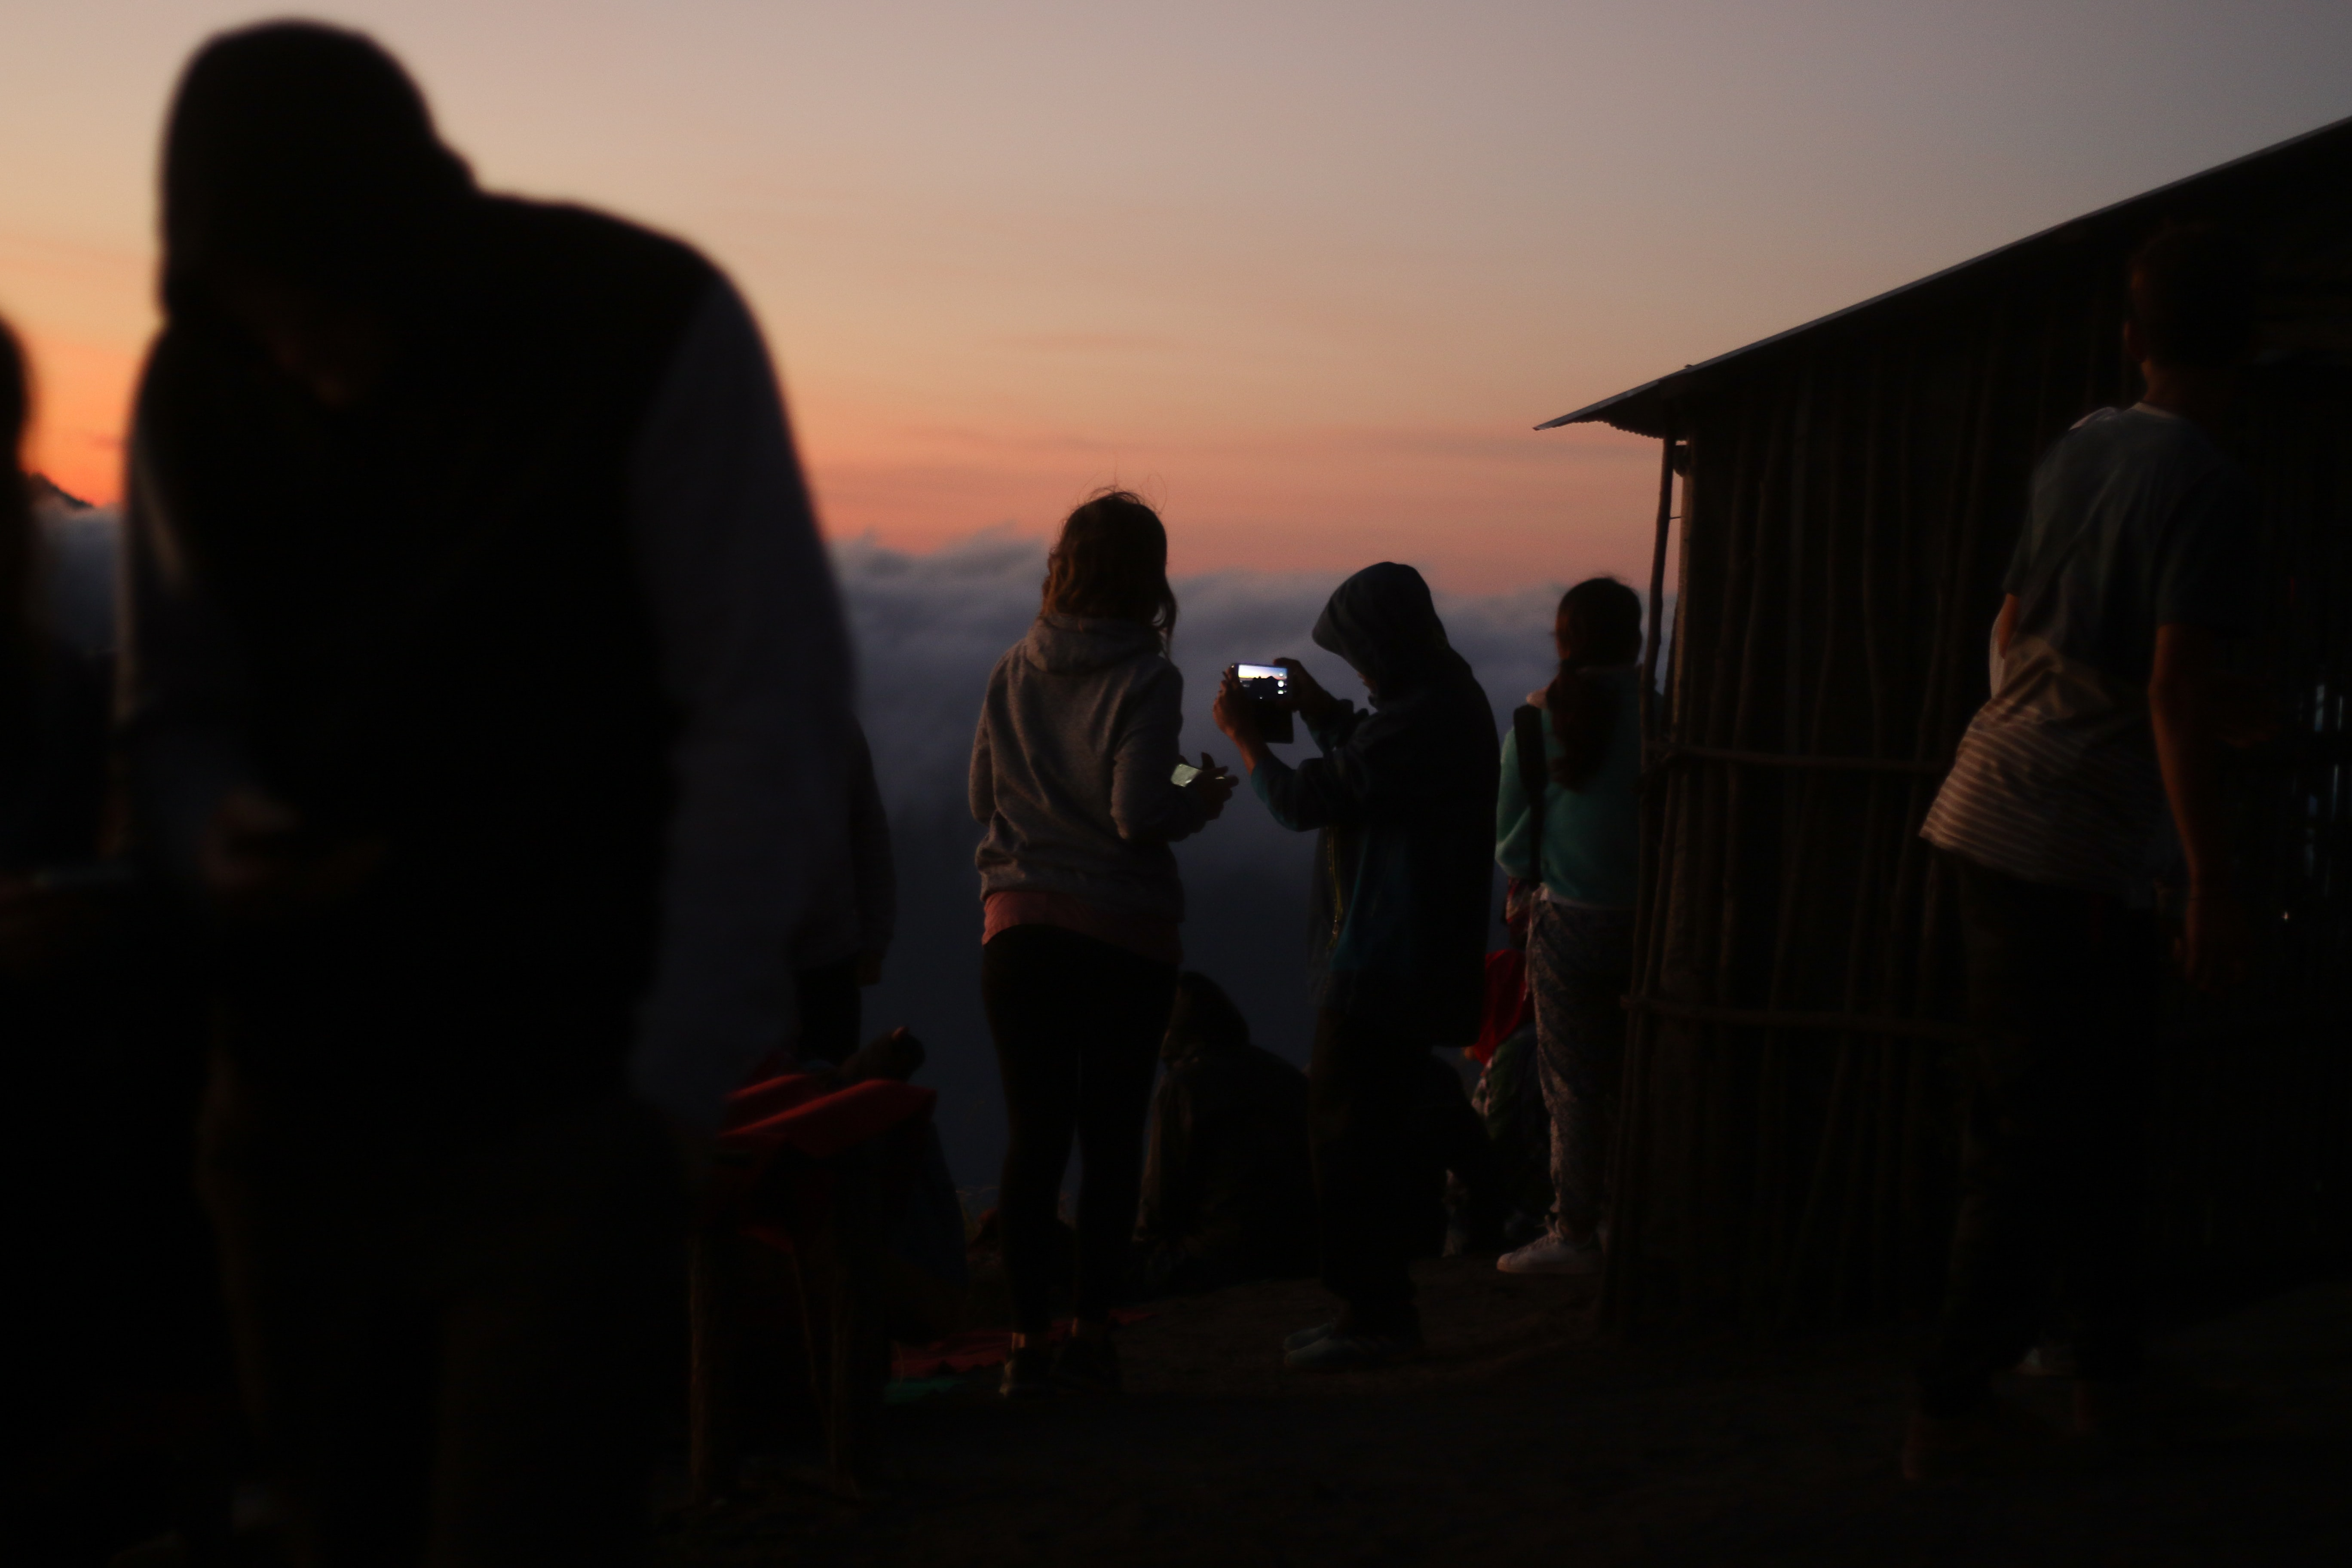 group of people near hut at sunset